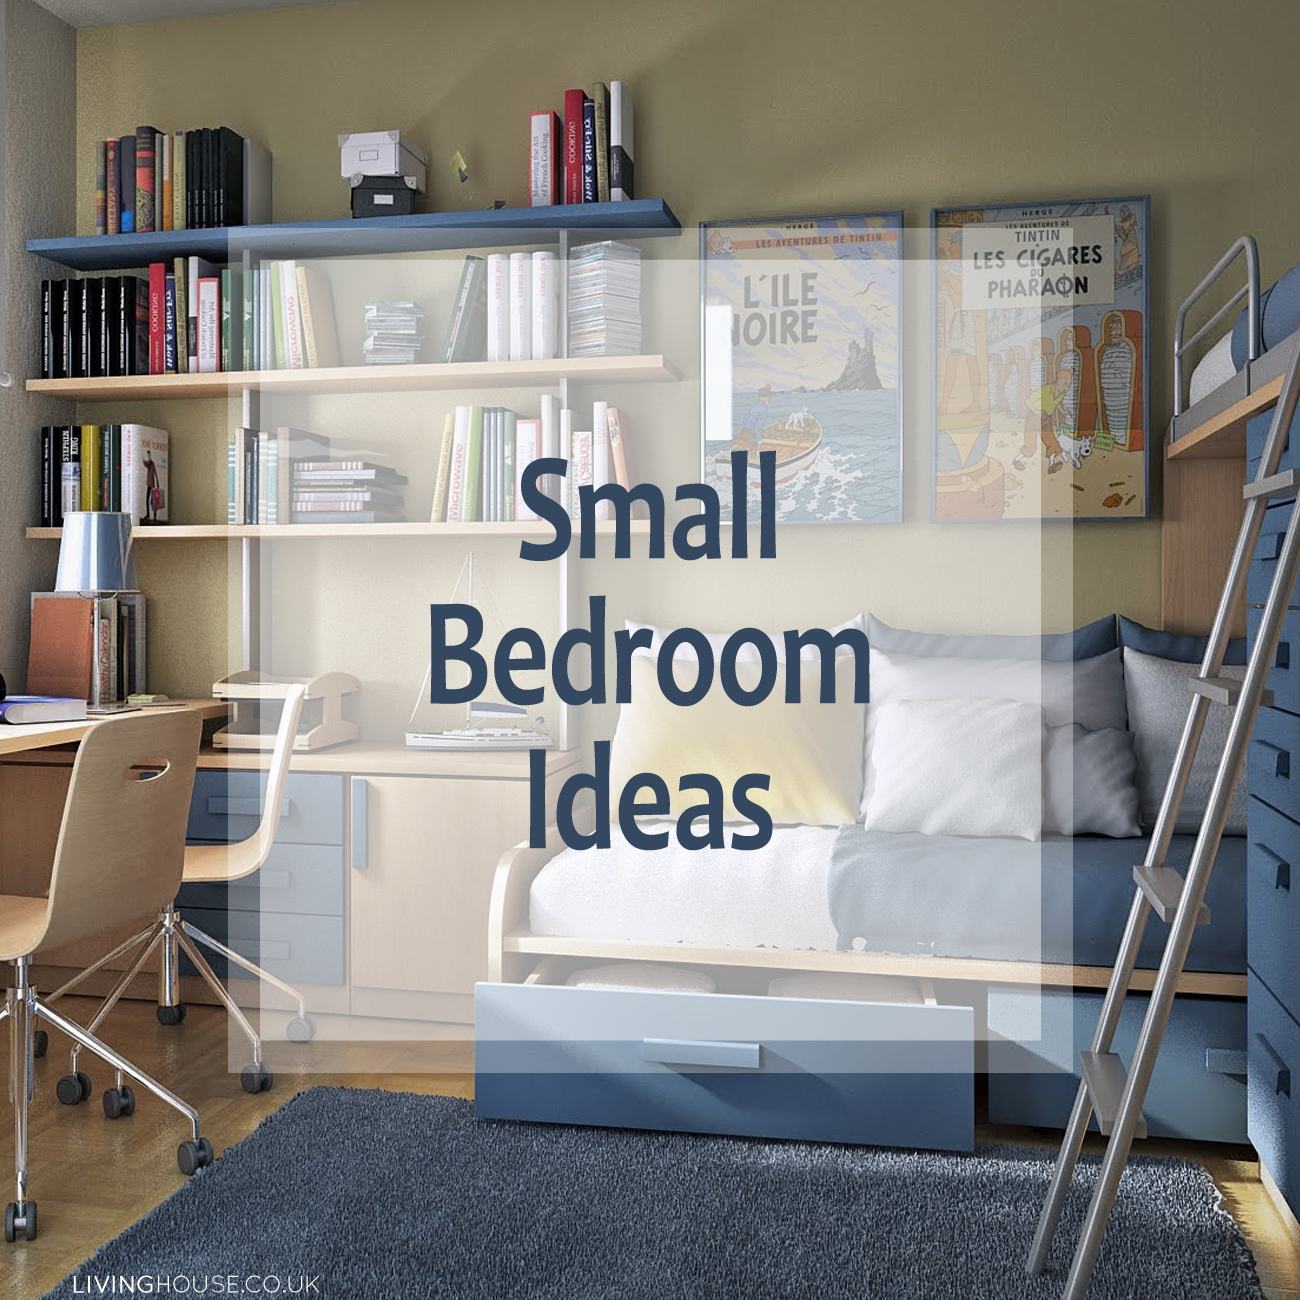 Small bedroom ideas livinghouse blog for Bedroom design uk